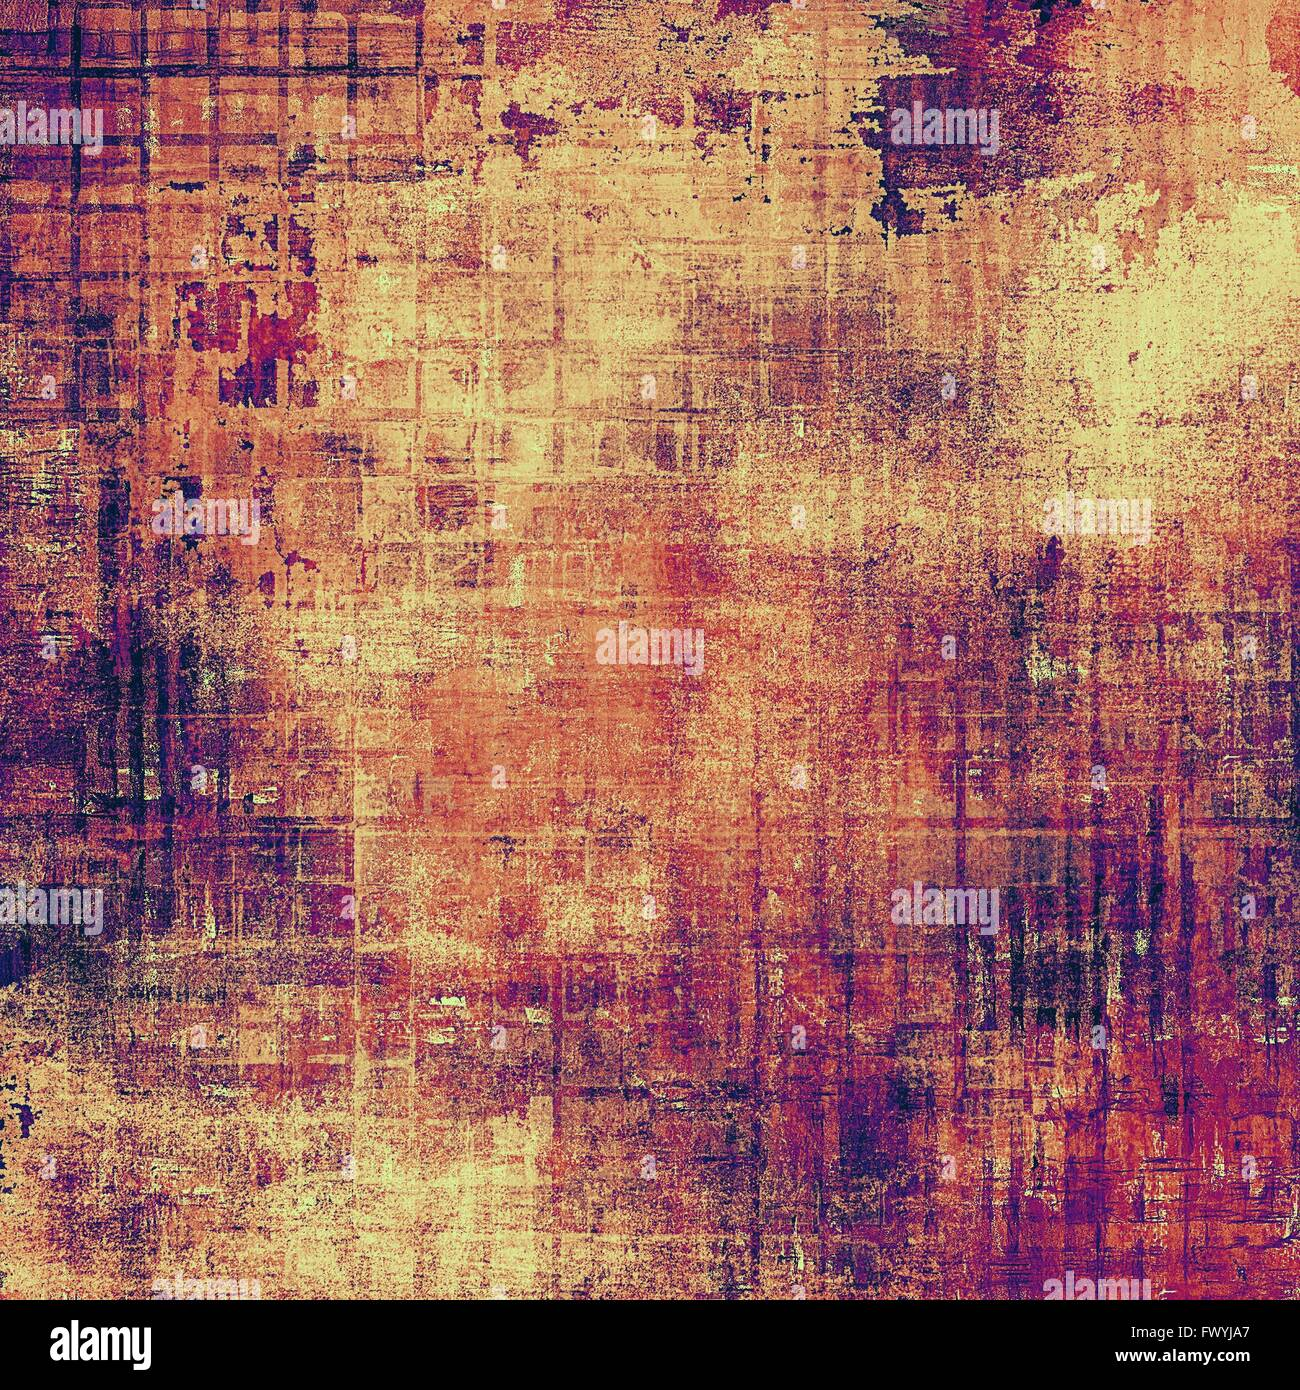 Art Grunge Texture, Vintage Abstract Background For Creative Design. With  Different Color Patterns: Yellow (beige); Brown; Red (orange); Purple  (violet); Pink Stock Photo - Alamy